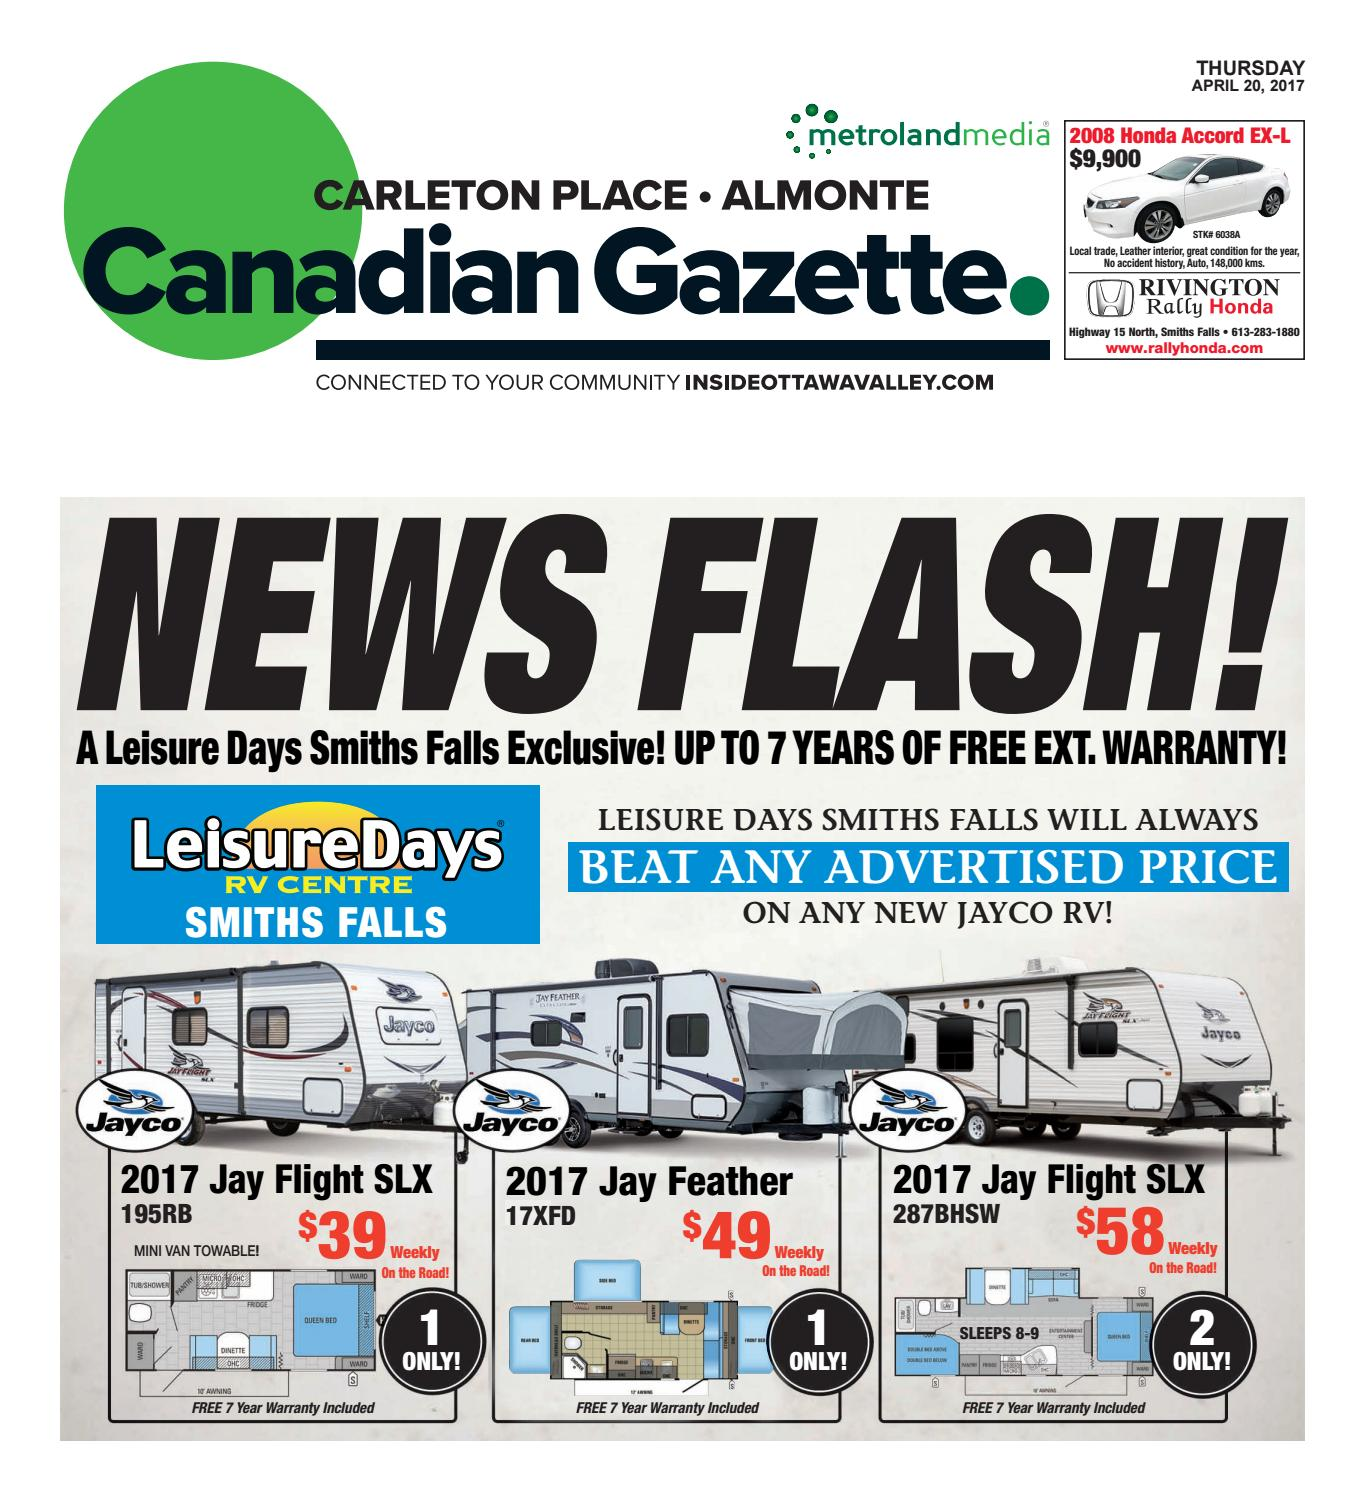 Almontecarletonplace042017 By Metroland East Almonte Carleton Expedition E 6698 Mc Steel Black Titanium Place Canadian Gazette Issuu